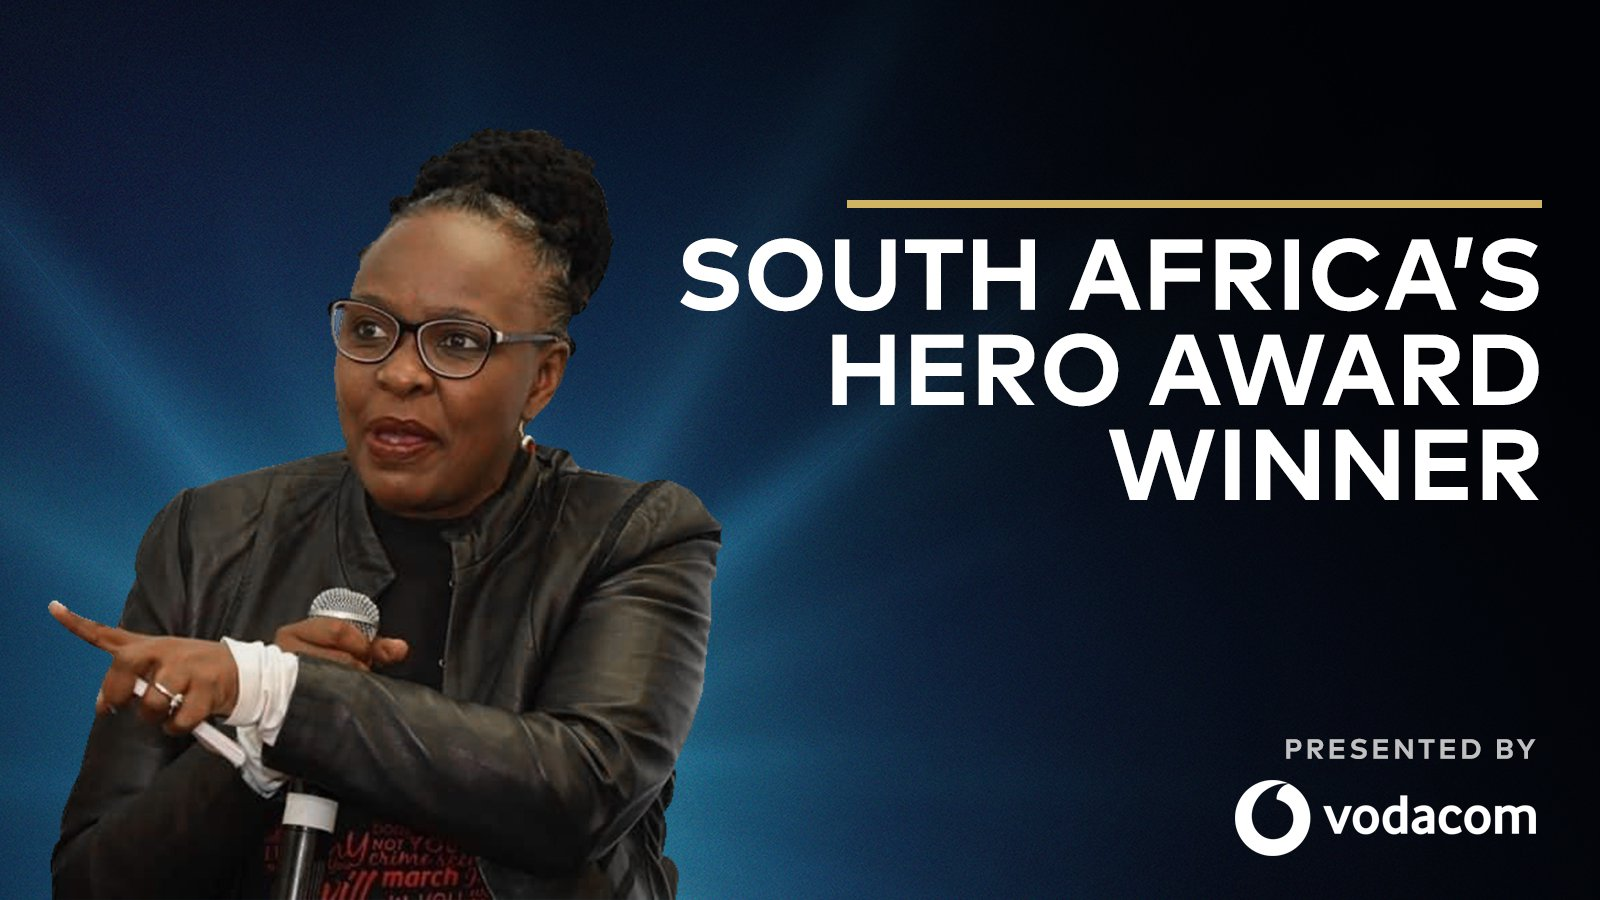 South Africa's Hero Award